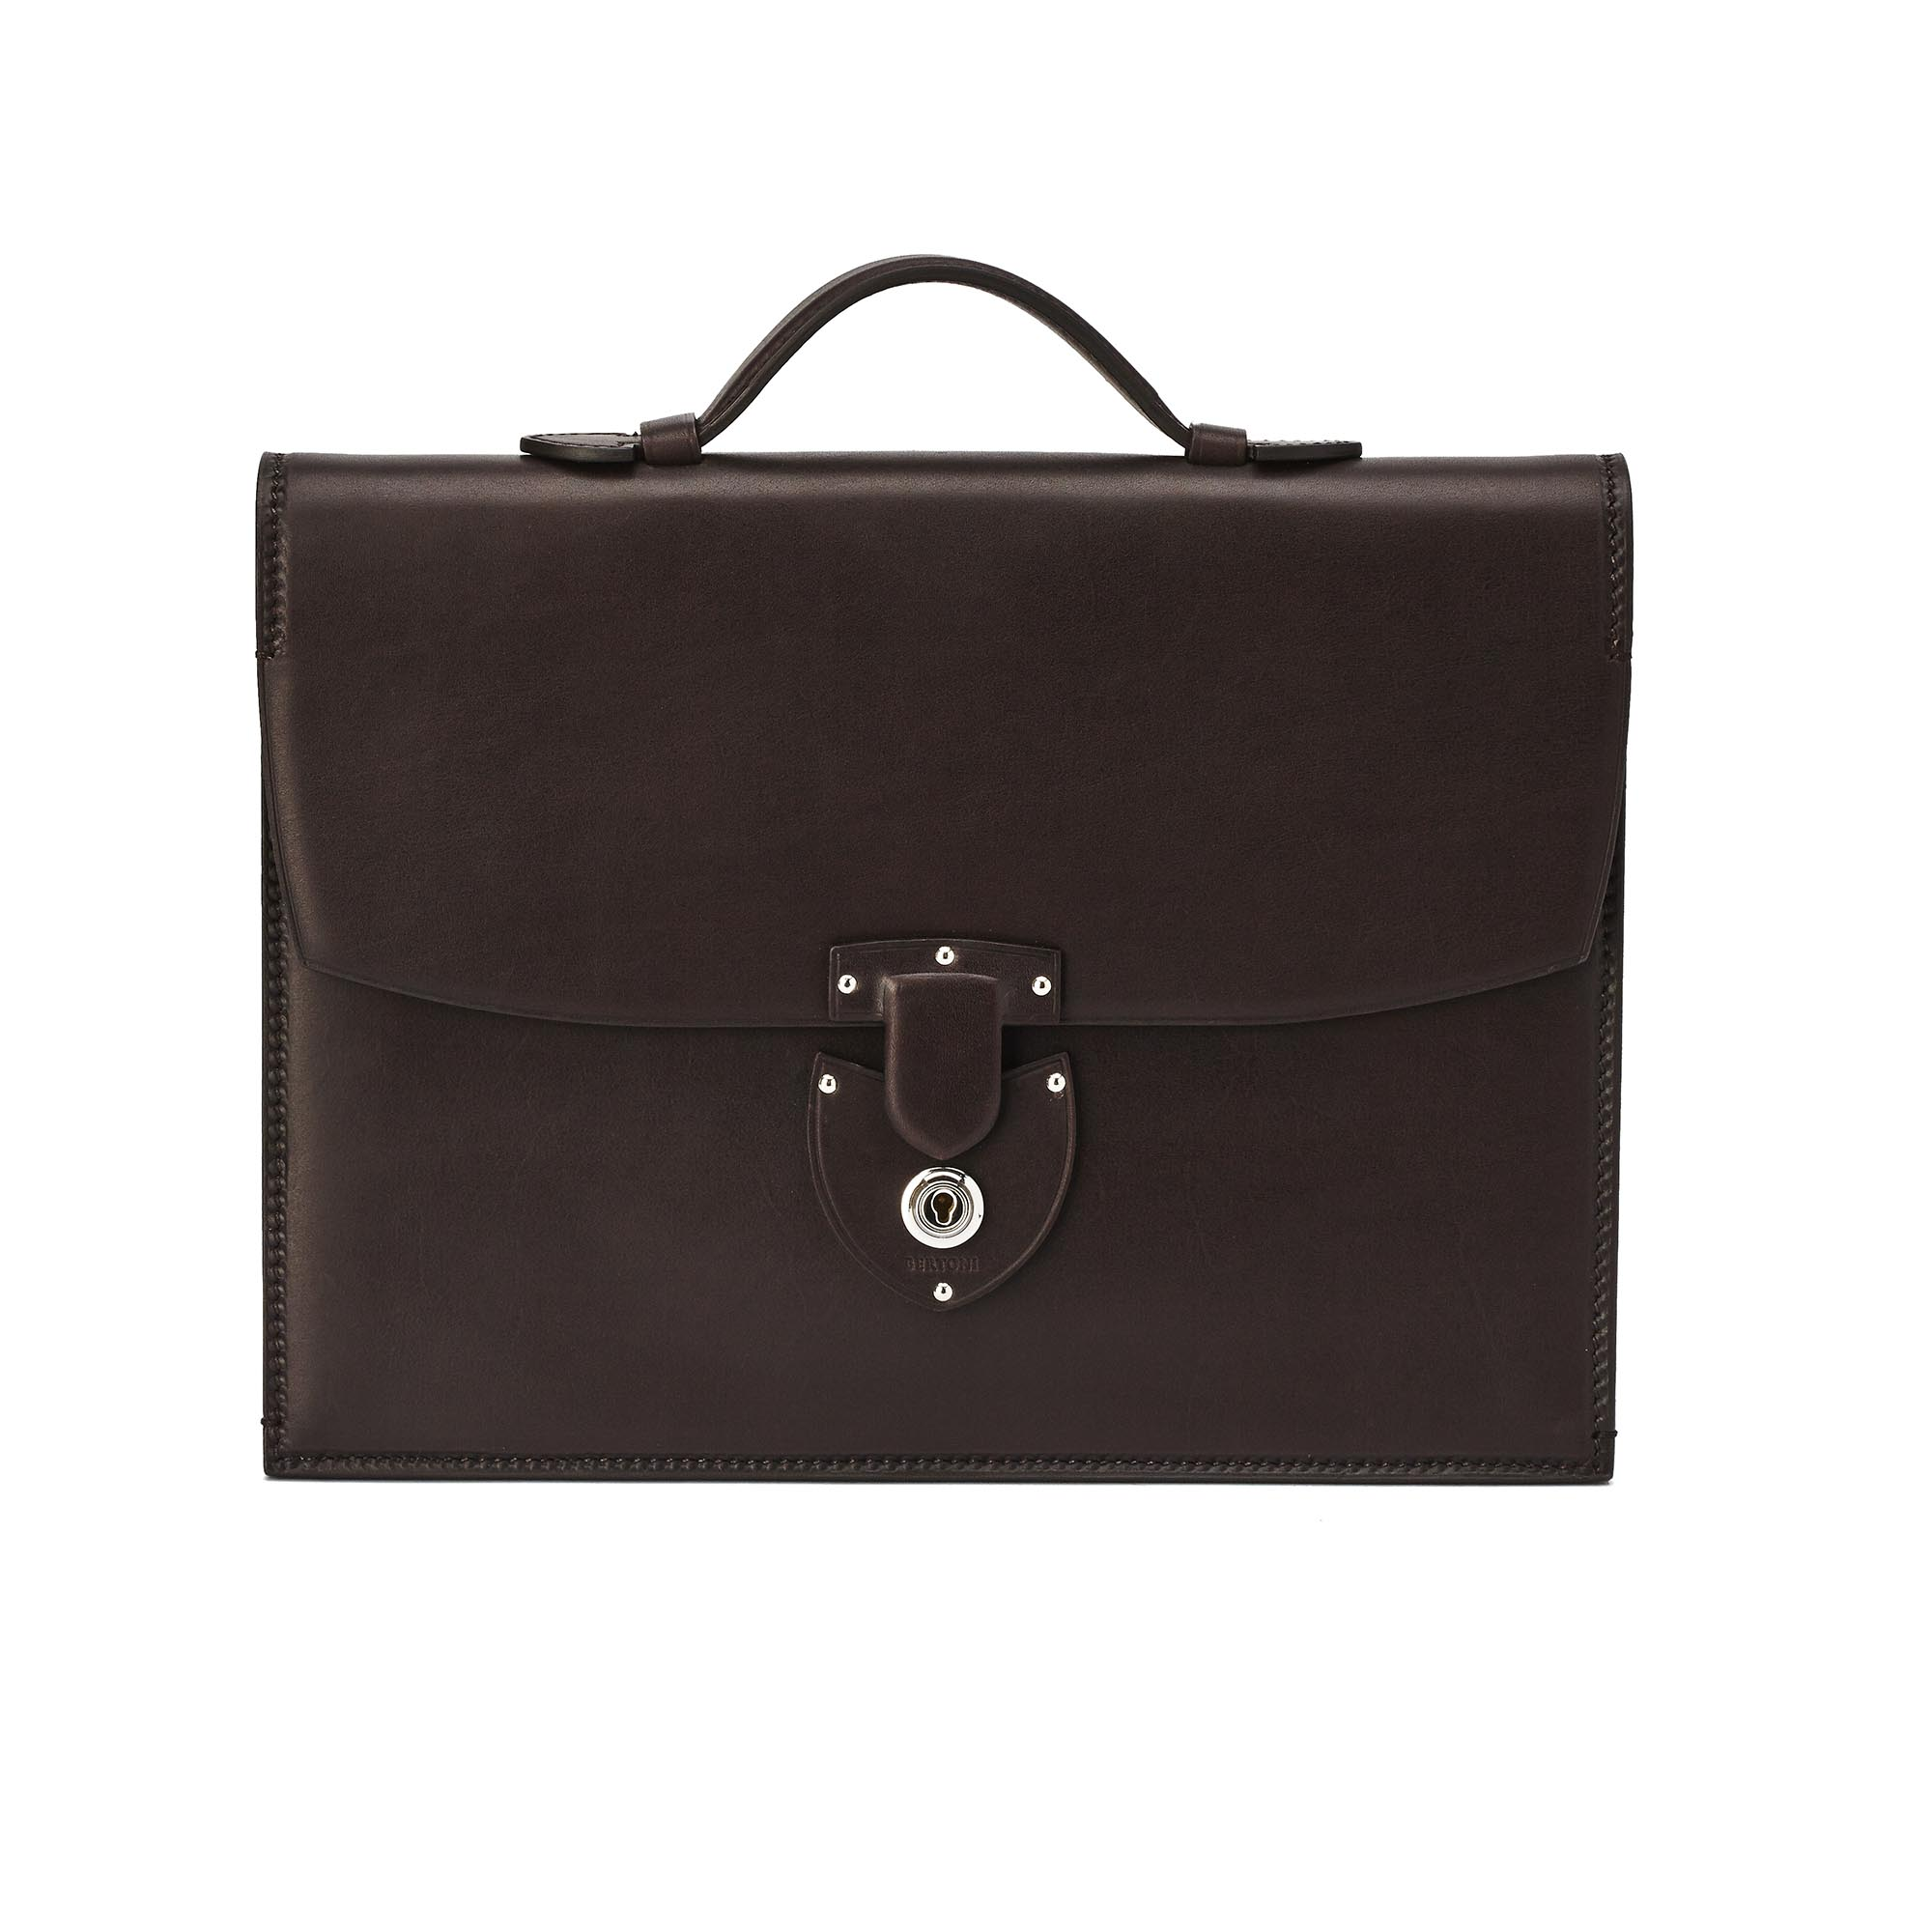 Signature-Biker-dark-brown-french-calf-bag-Bertoni-1949